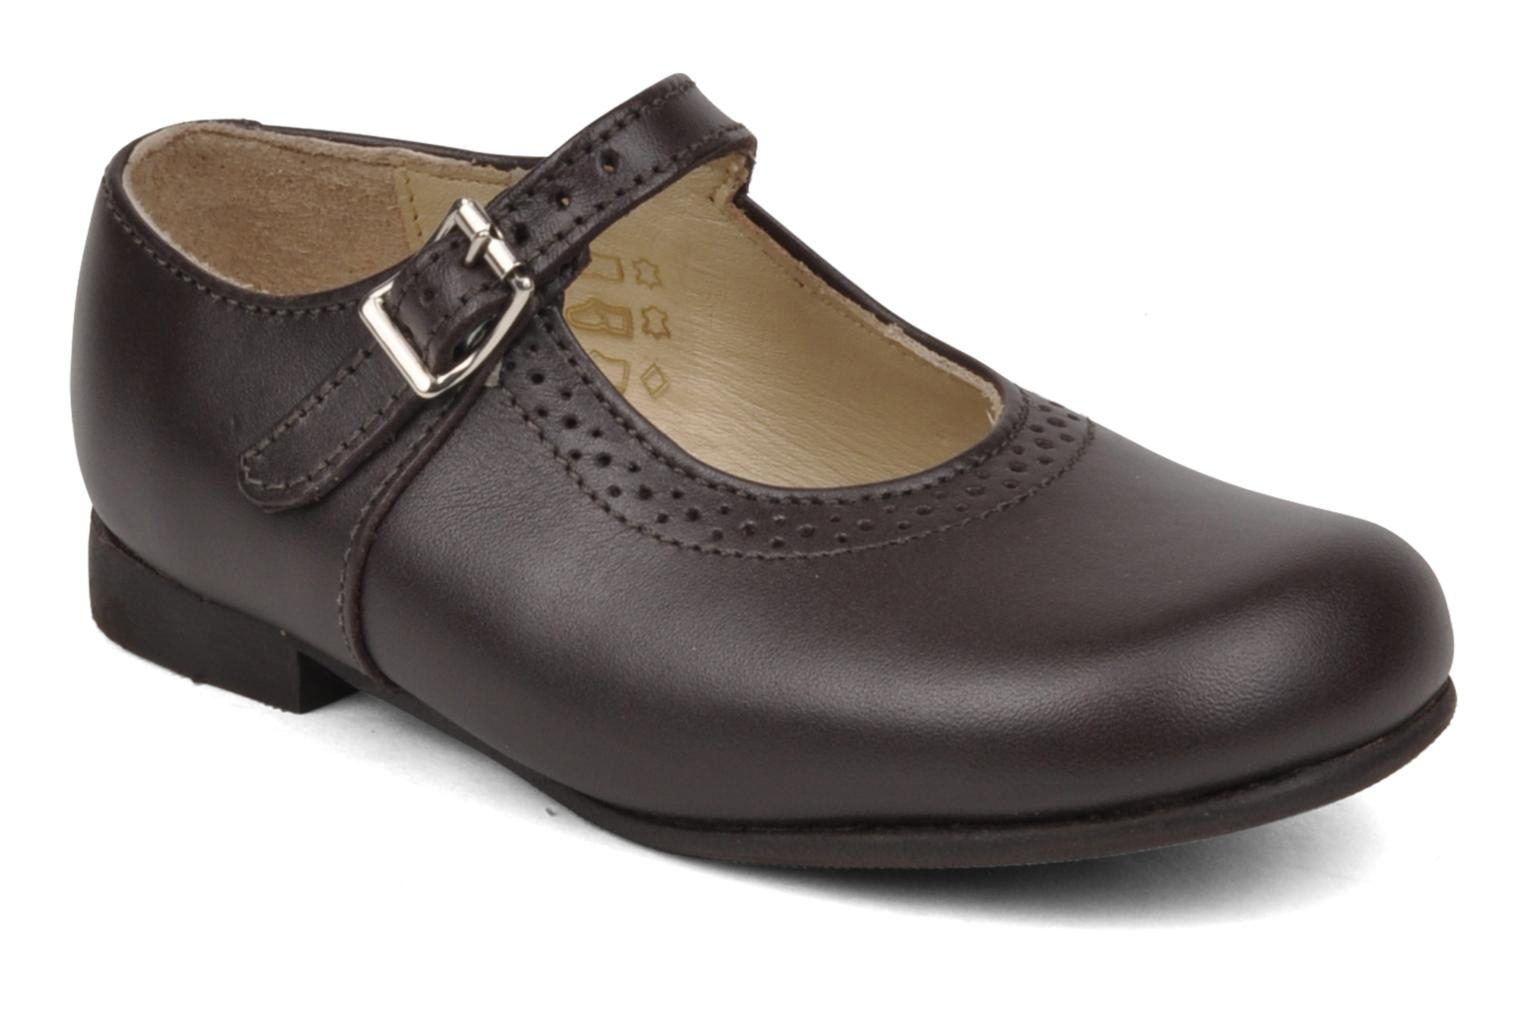 Clare Brown leather